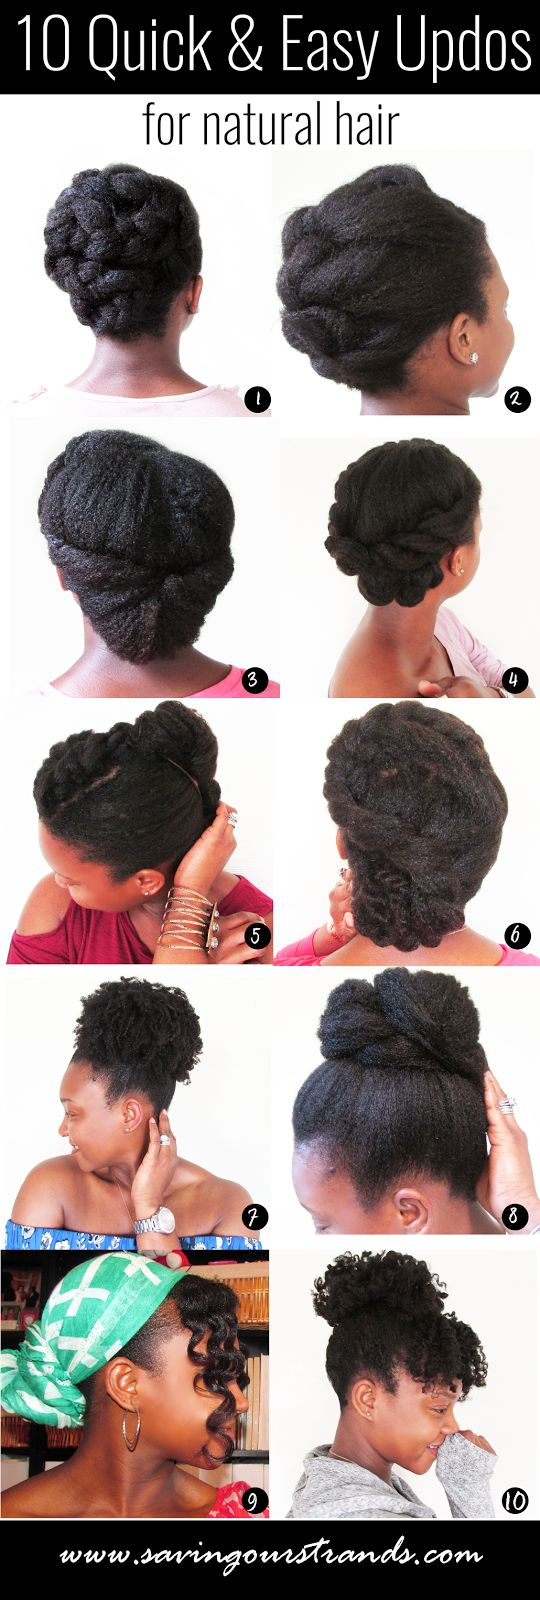 SavingOurStrands | Celebrating Our Natural Kinks Curls & Coils: 10 Quick and Easy Updos For Natural Hair